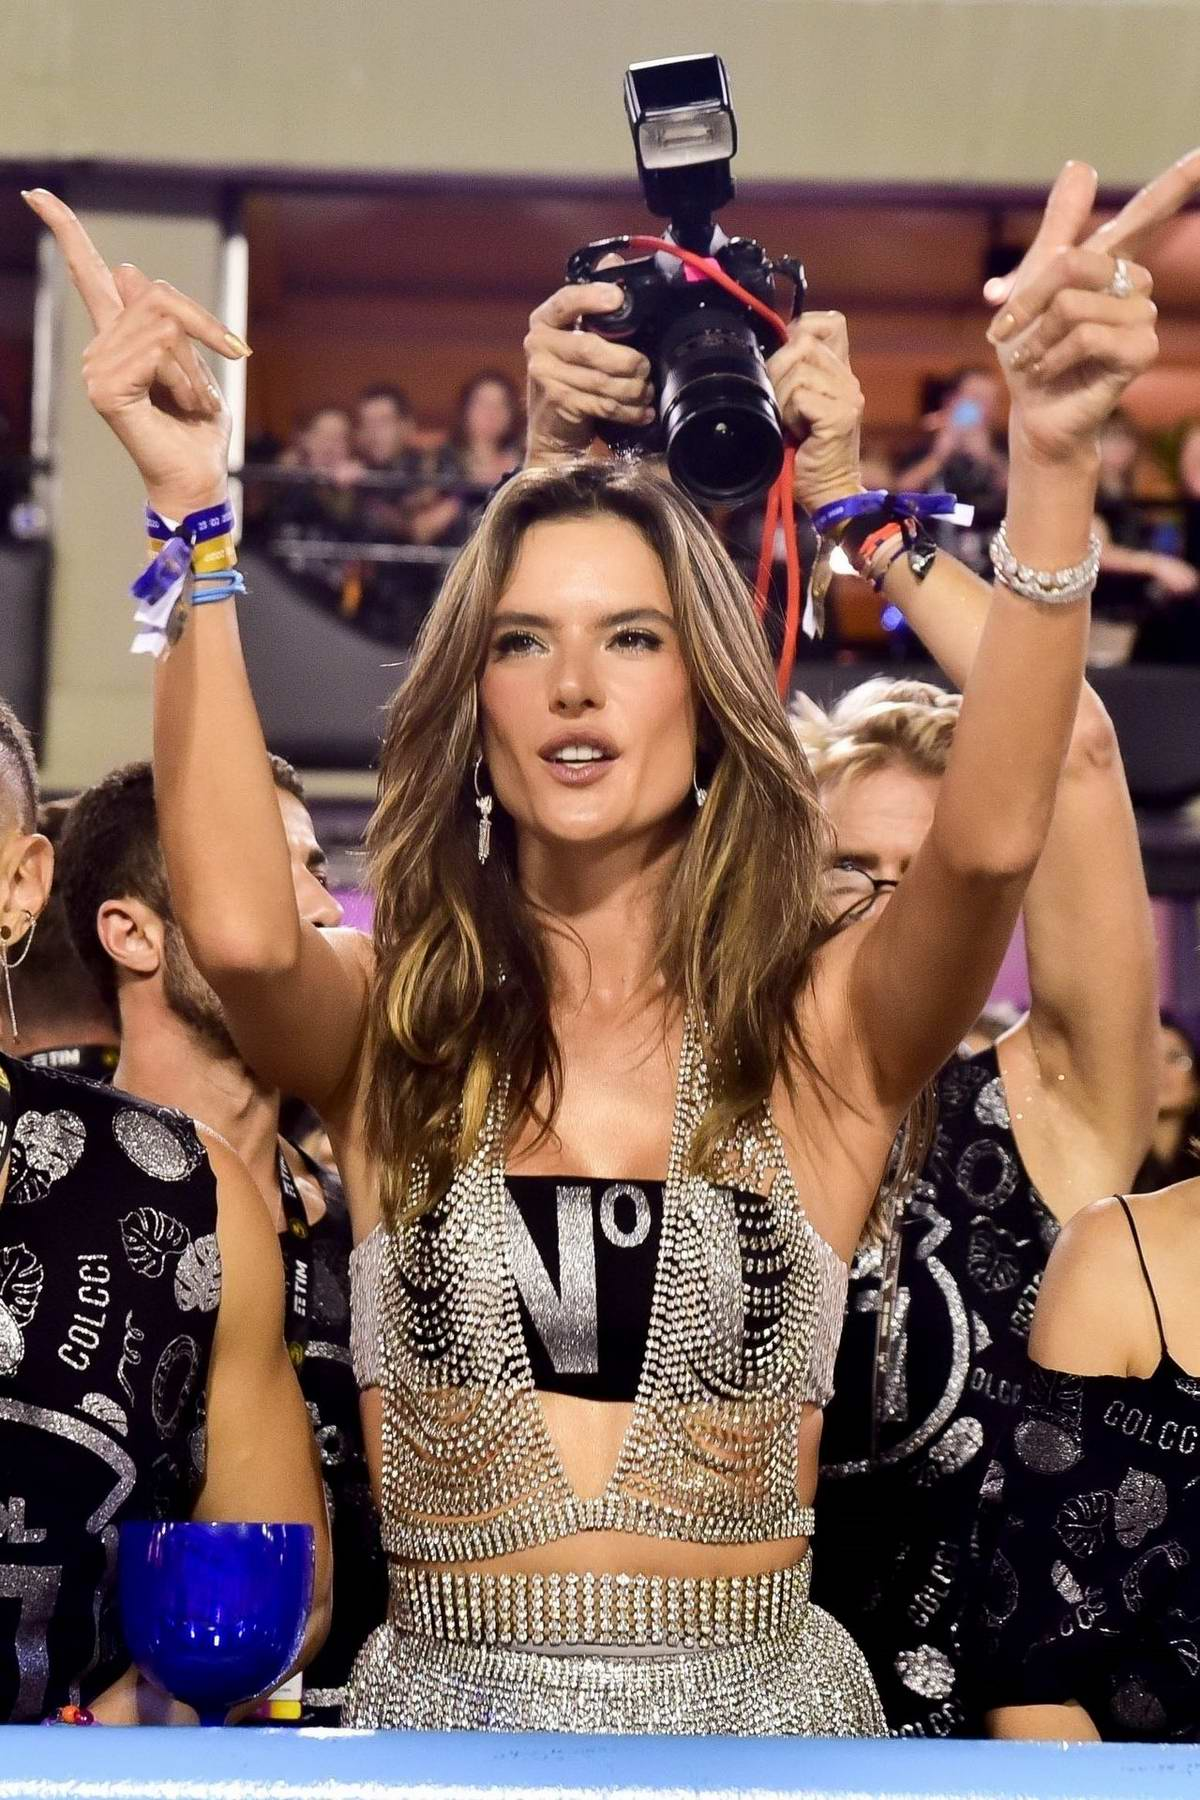 Alessandra Ambrosio stuns in a silver fringe dress while enjoying the Carnival in Rio de Janeiro, Brazil